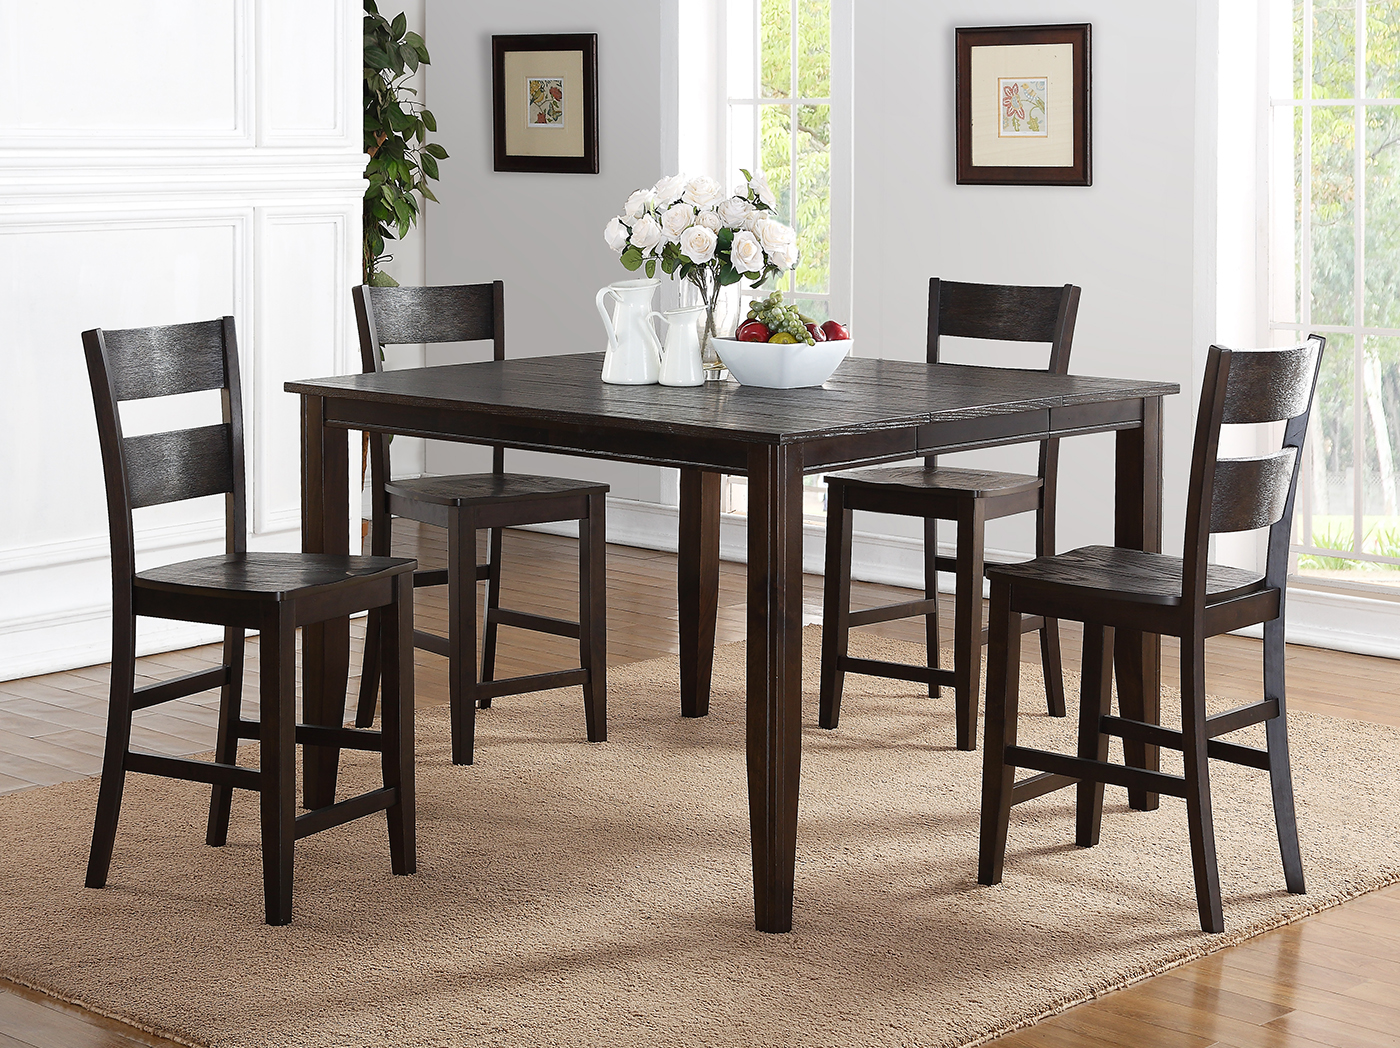 7 Pc. Counter Height Dining Set